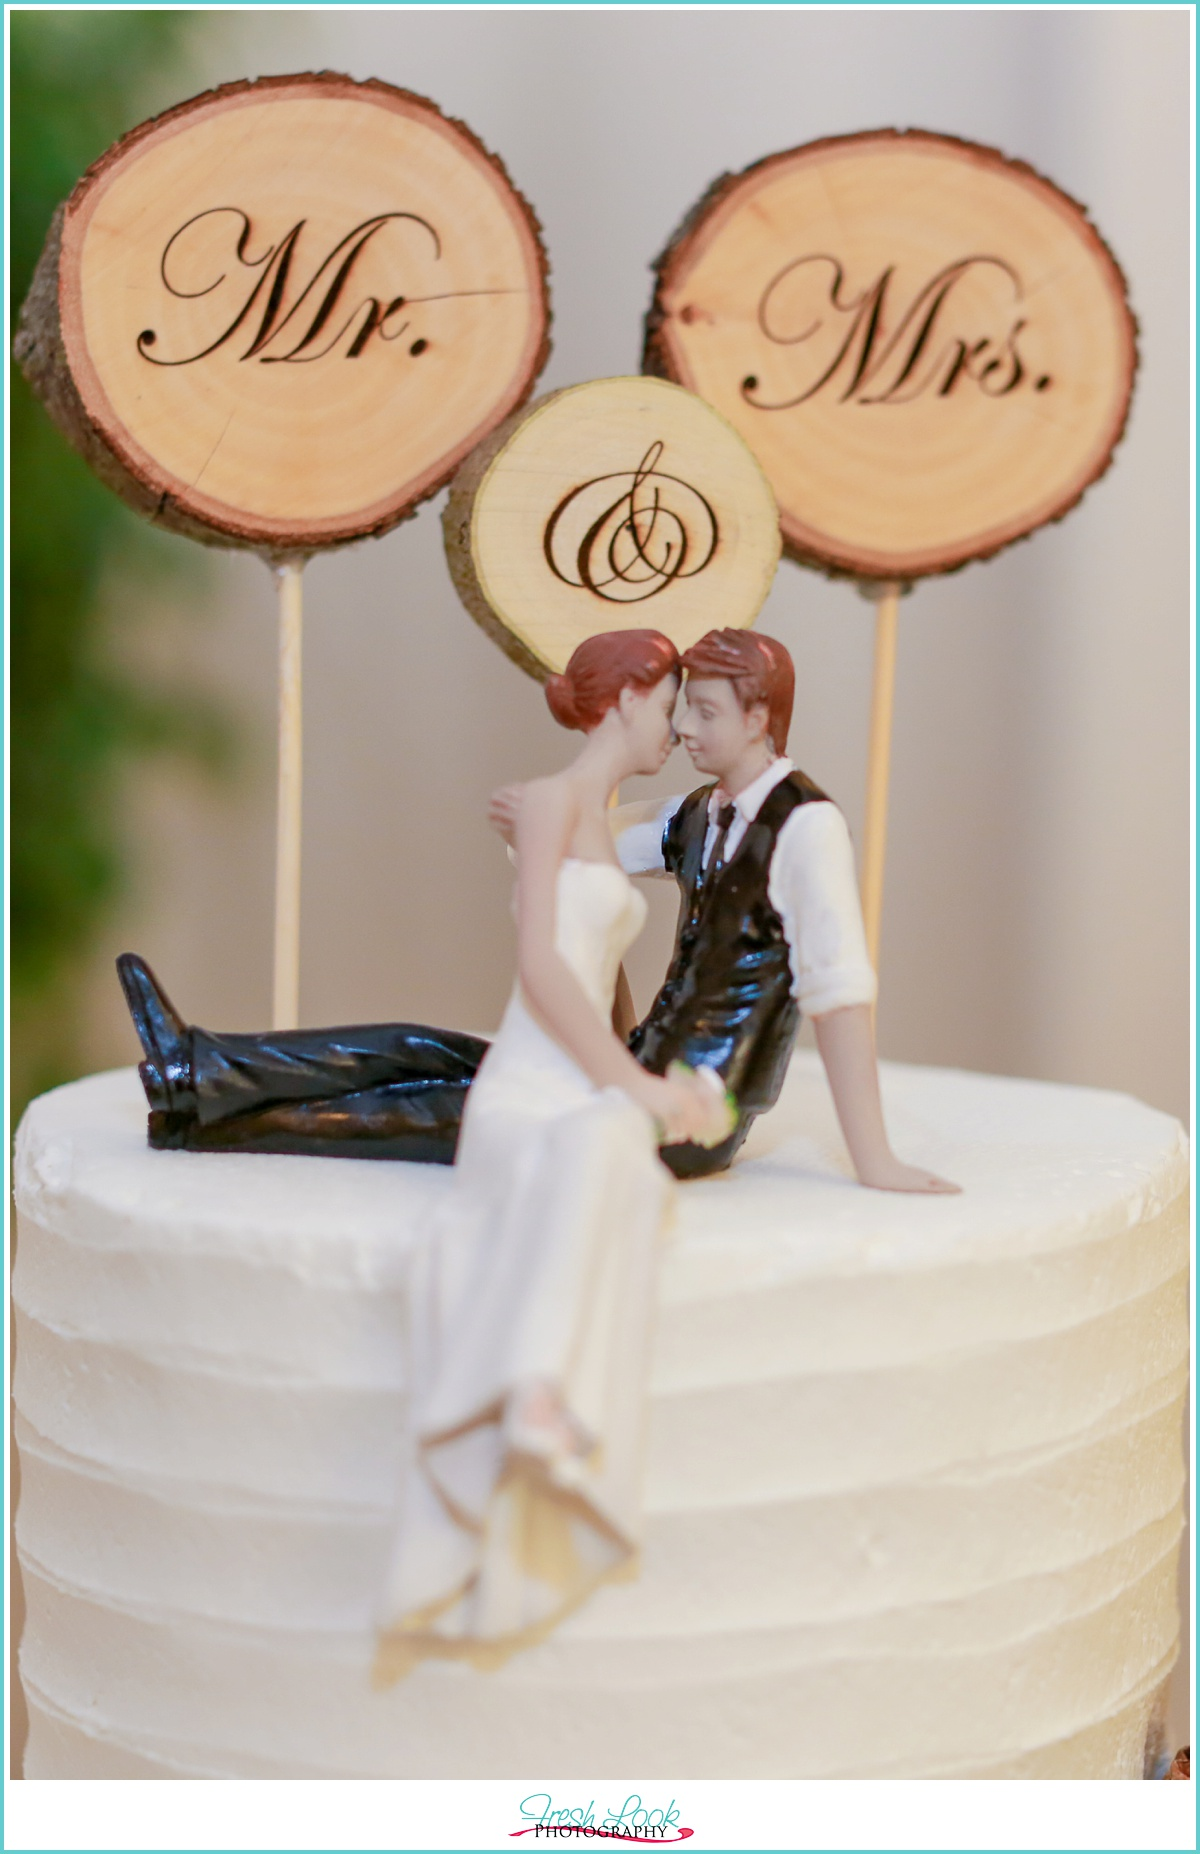 Mr and Mrs cake topper sign